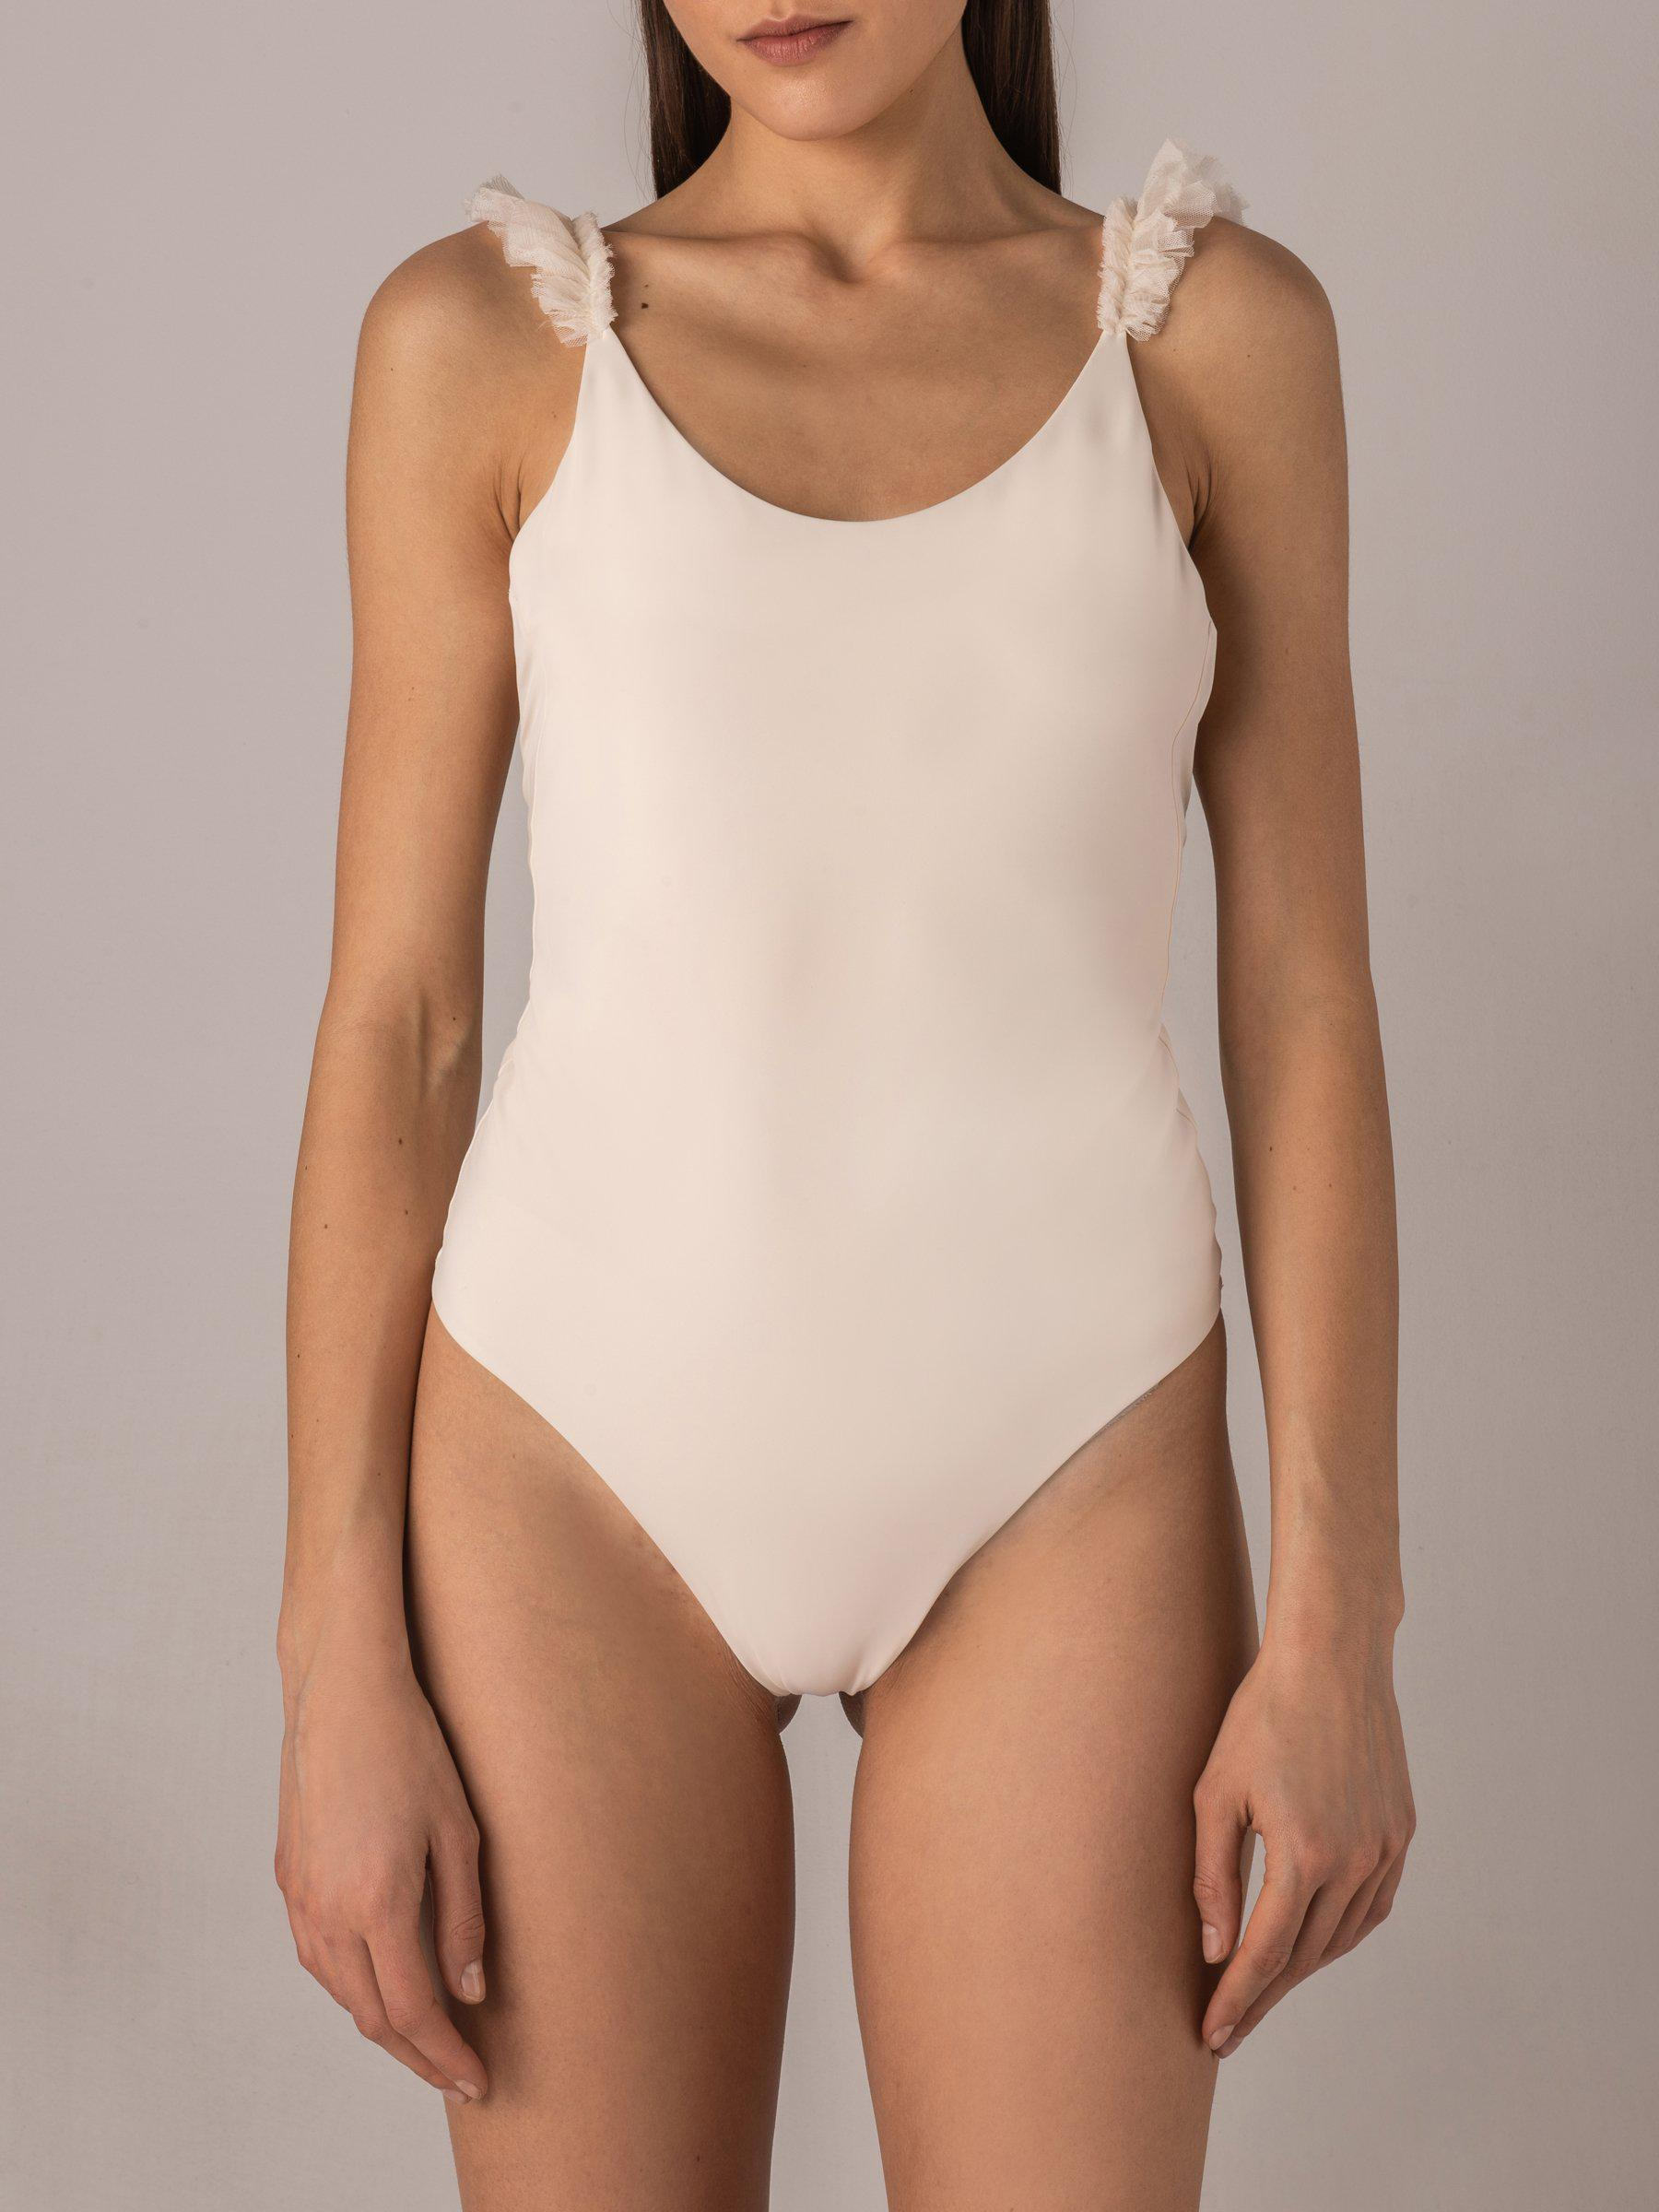 Silky Wings Simple One-Piece